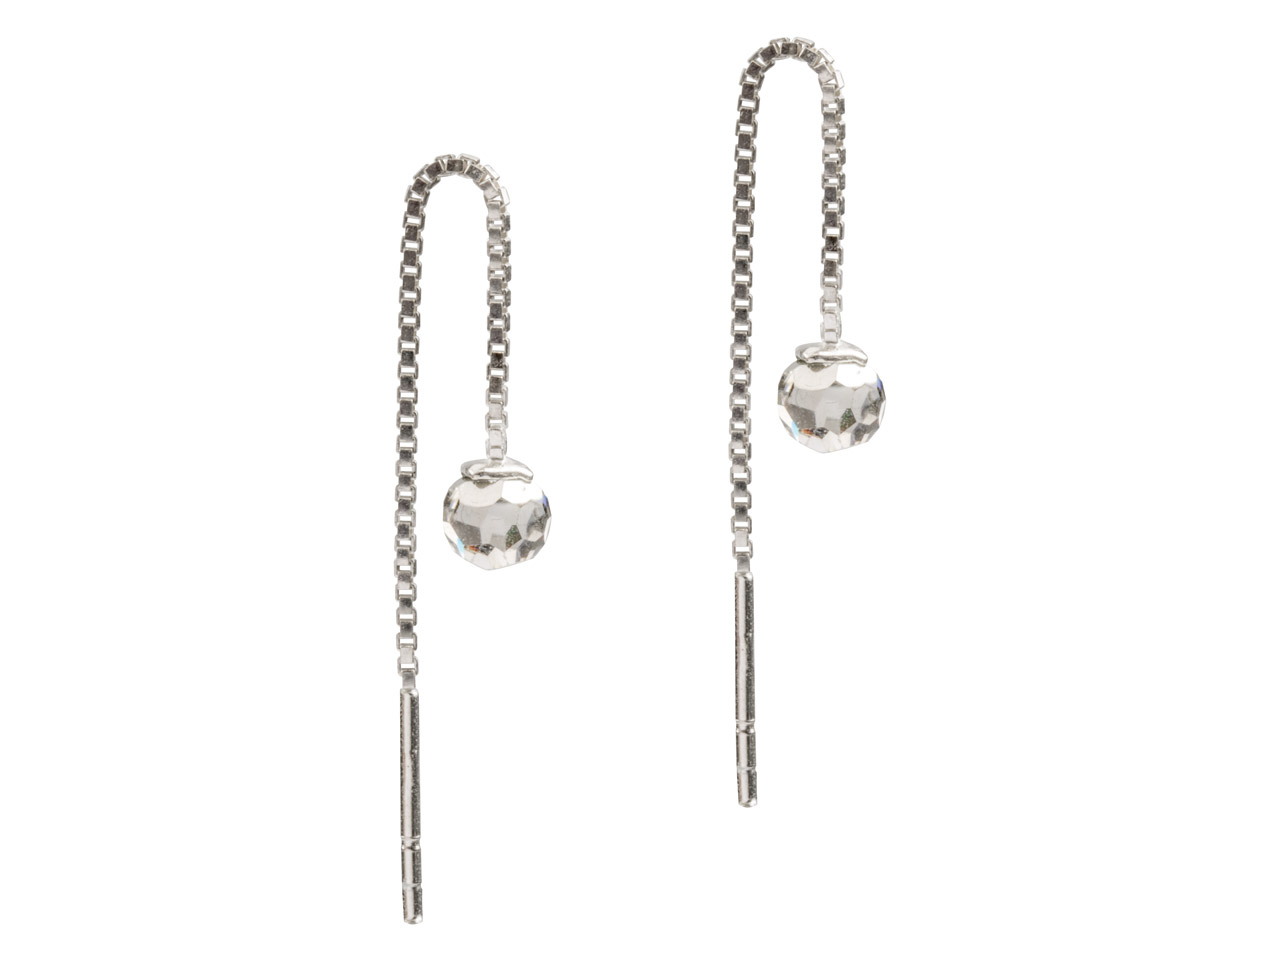 Sterling Silver Threadable Earrings With Crystal Ball